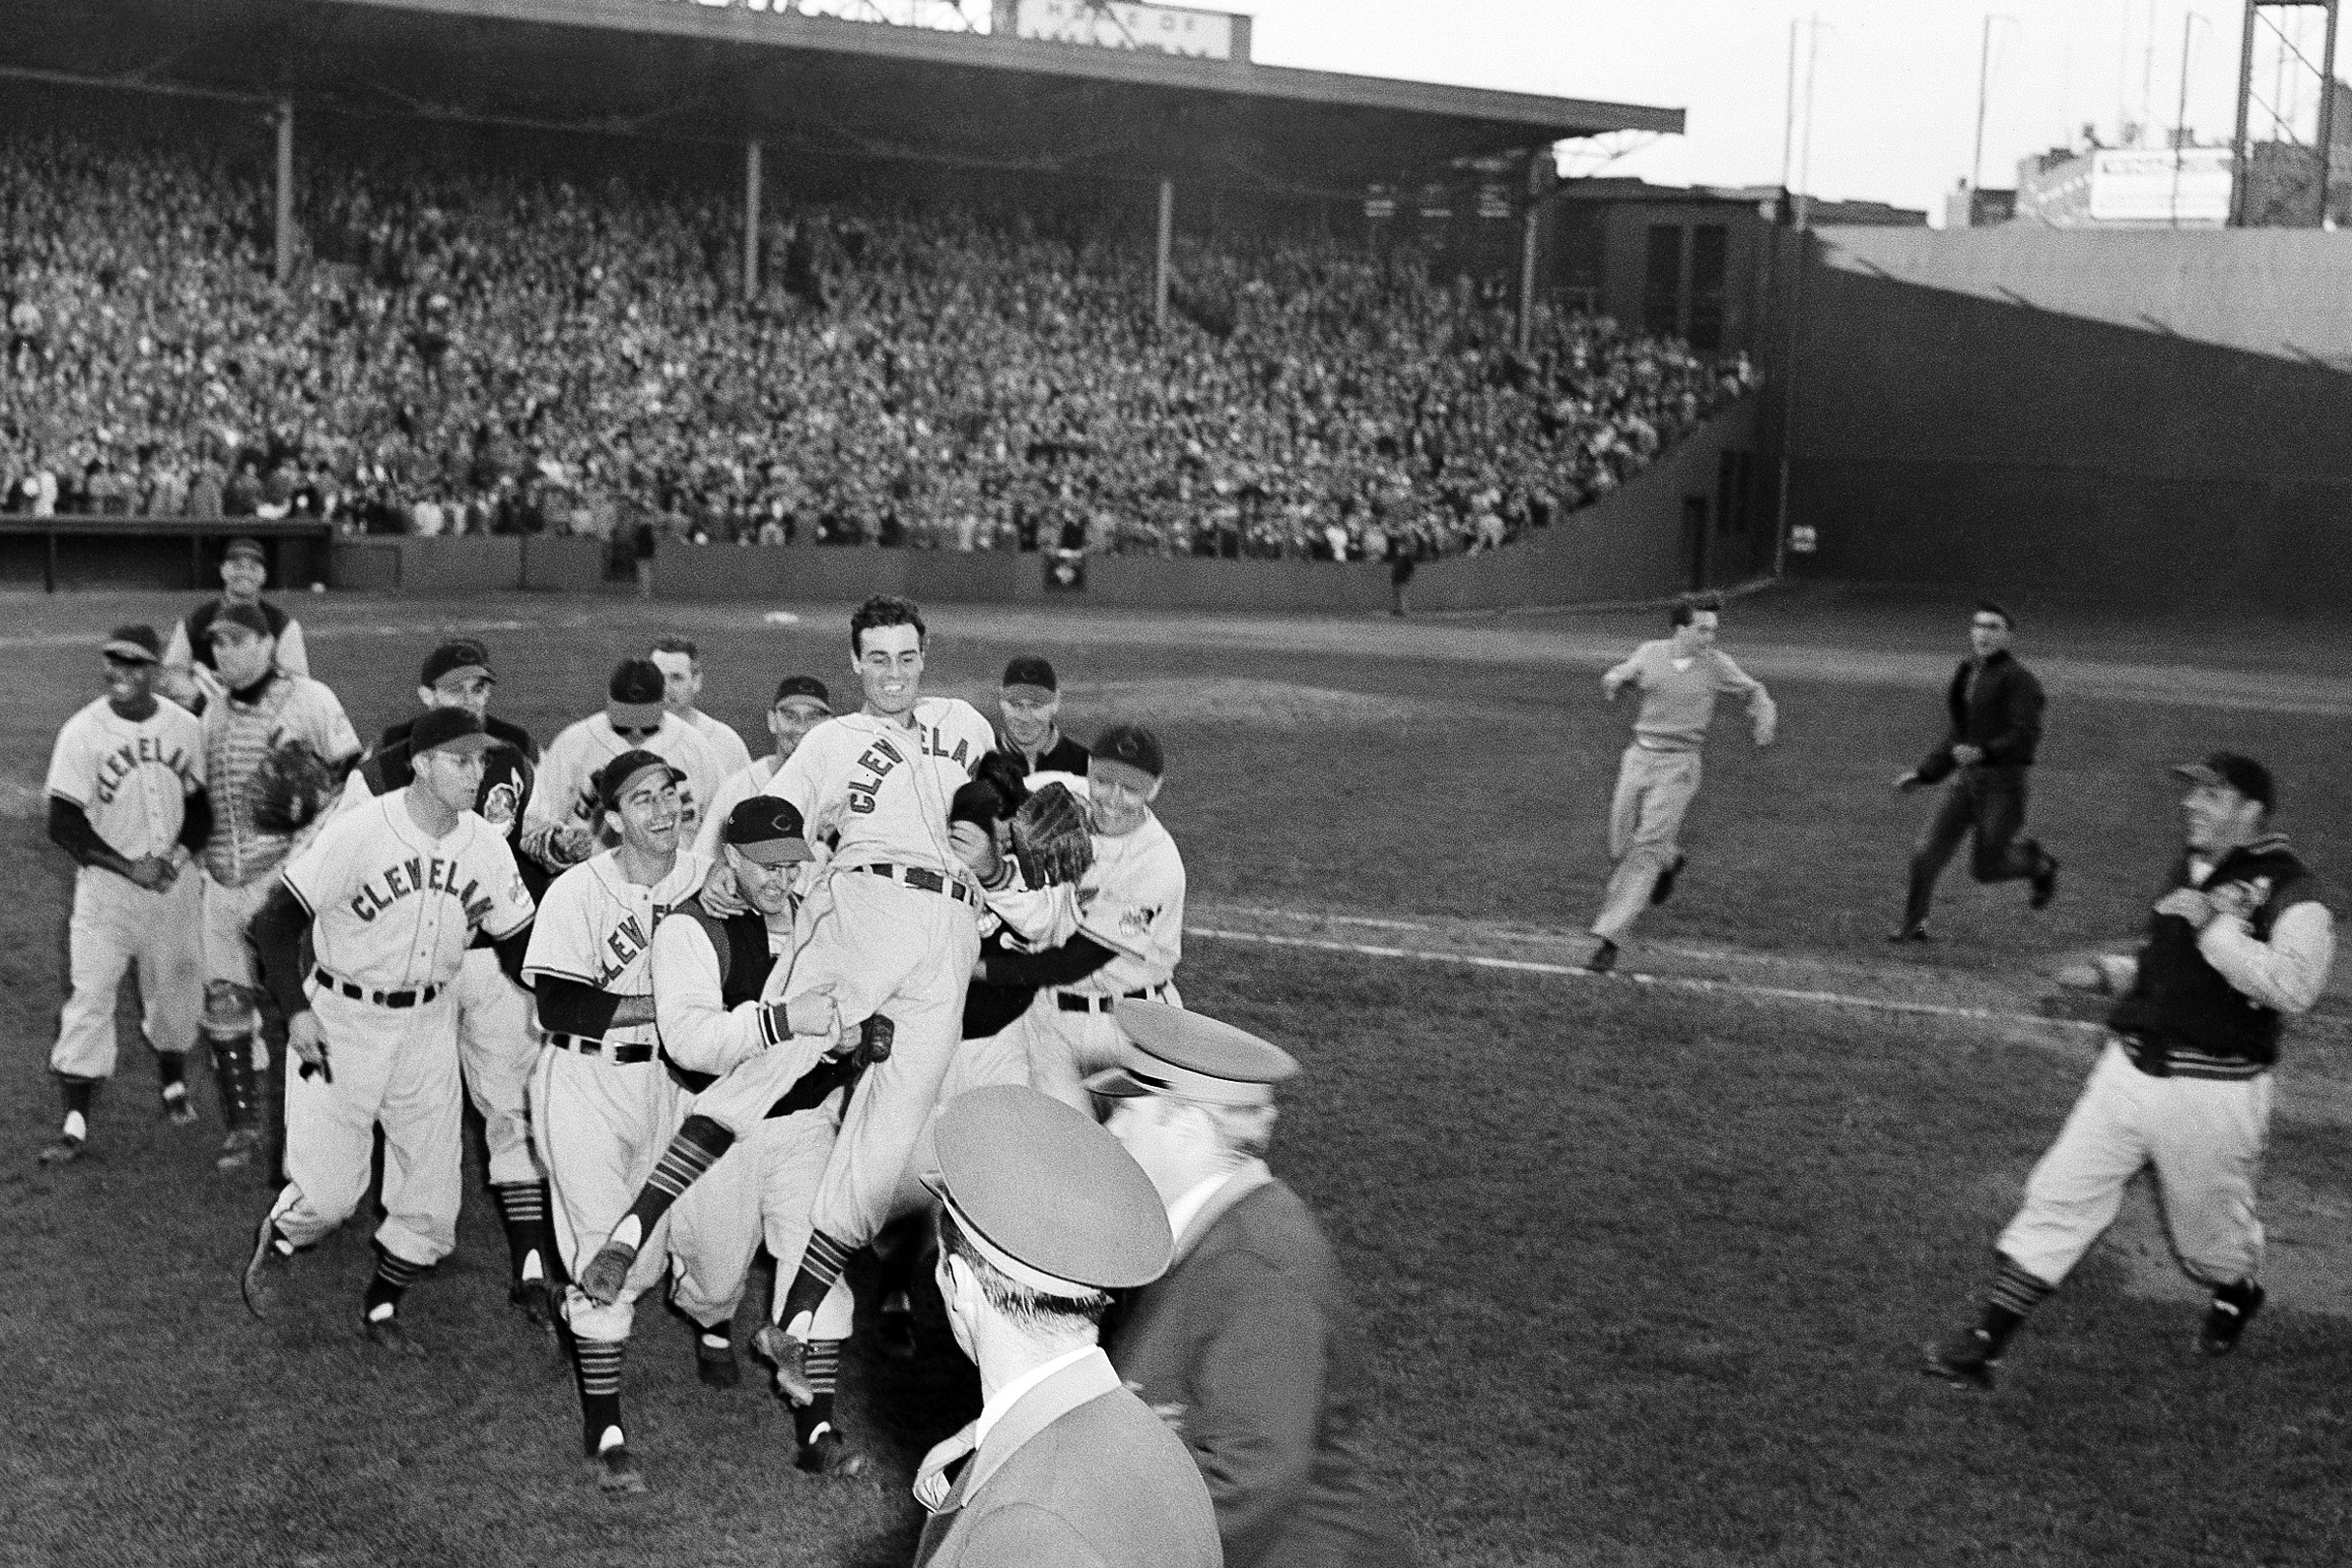 FILE - In this Oct. 4, 1948, file photo, Cleveland Indians pitcher Gene Bearden is carried off the field by teammates after their 8-3 win over the Boston Red Sox in a baseball game for the American League pennant at Fenway Park in Boston.  (AP Photo/File)